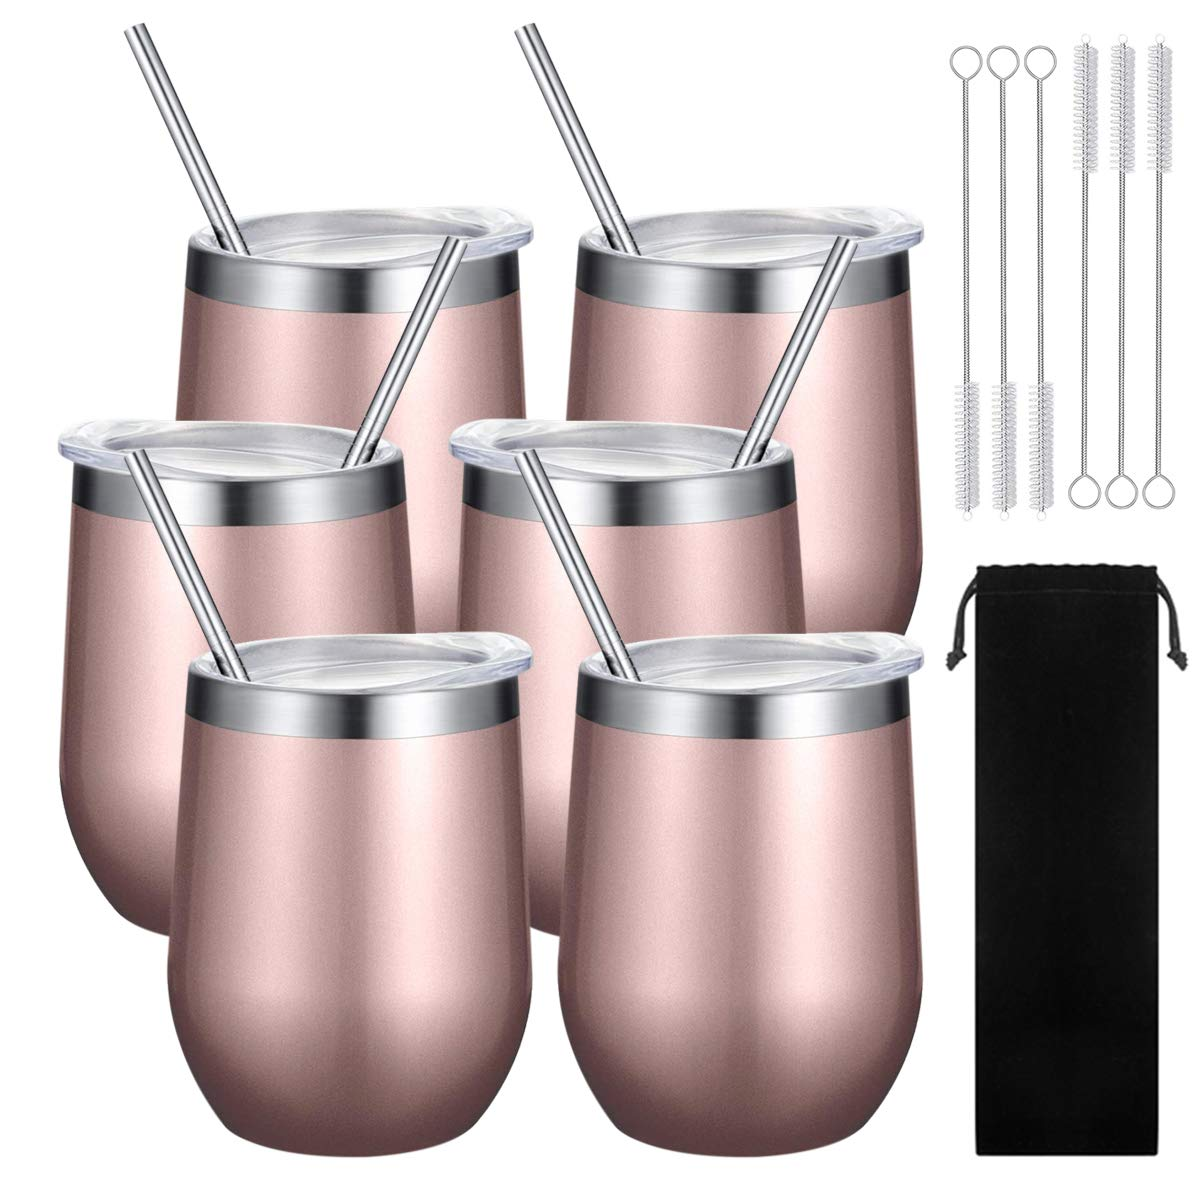 6 Sets Double-insulated Stemless Wine Tumbler Stainless Steel Unbreakable Wine Glass Cup Mug with Lids and Straws for Wine, Coffee, Drinks, Champagne, Cocktails, 12 Oz by Sangyn (Image #7)